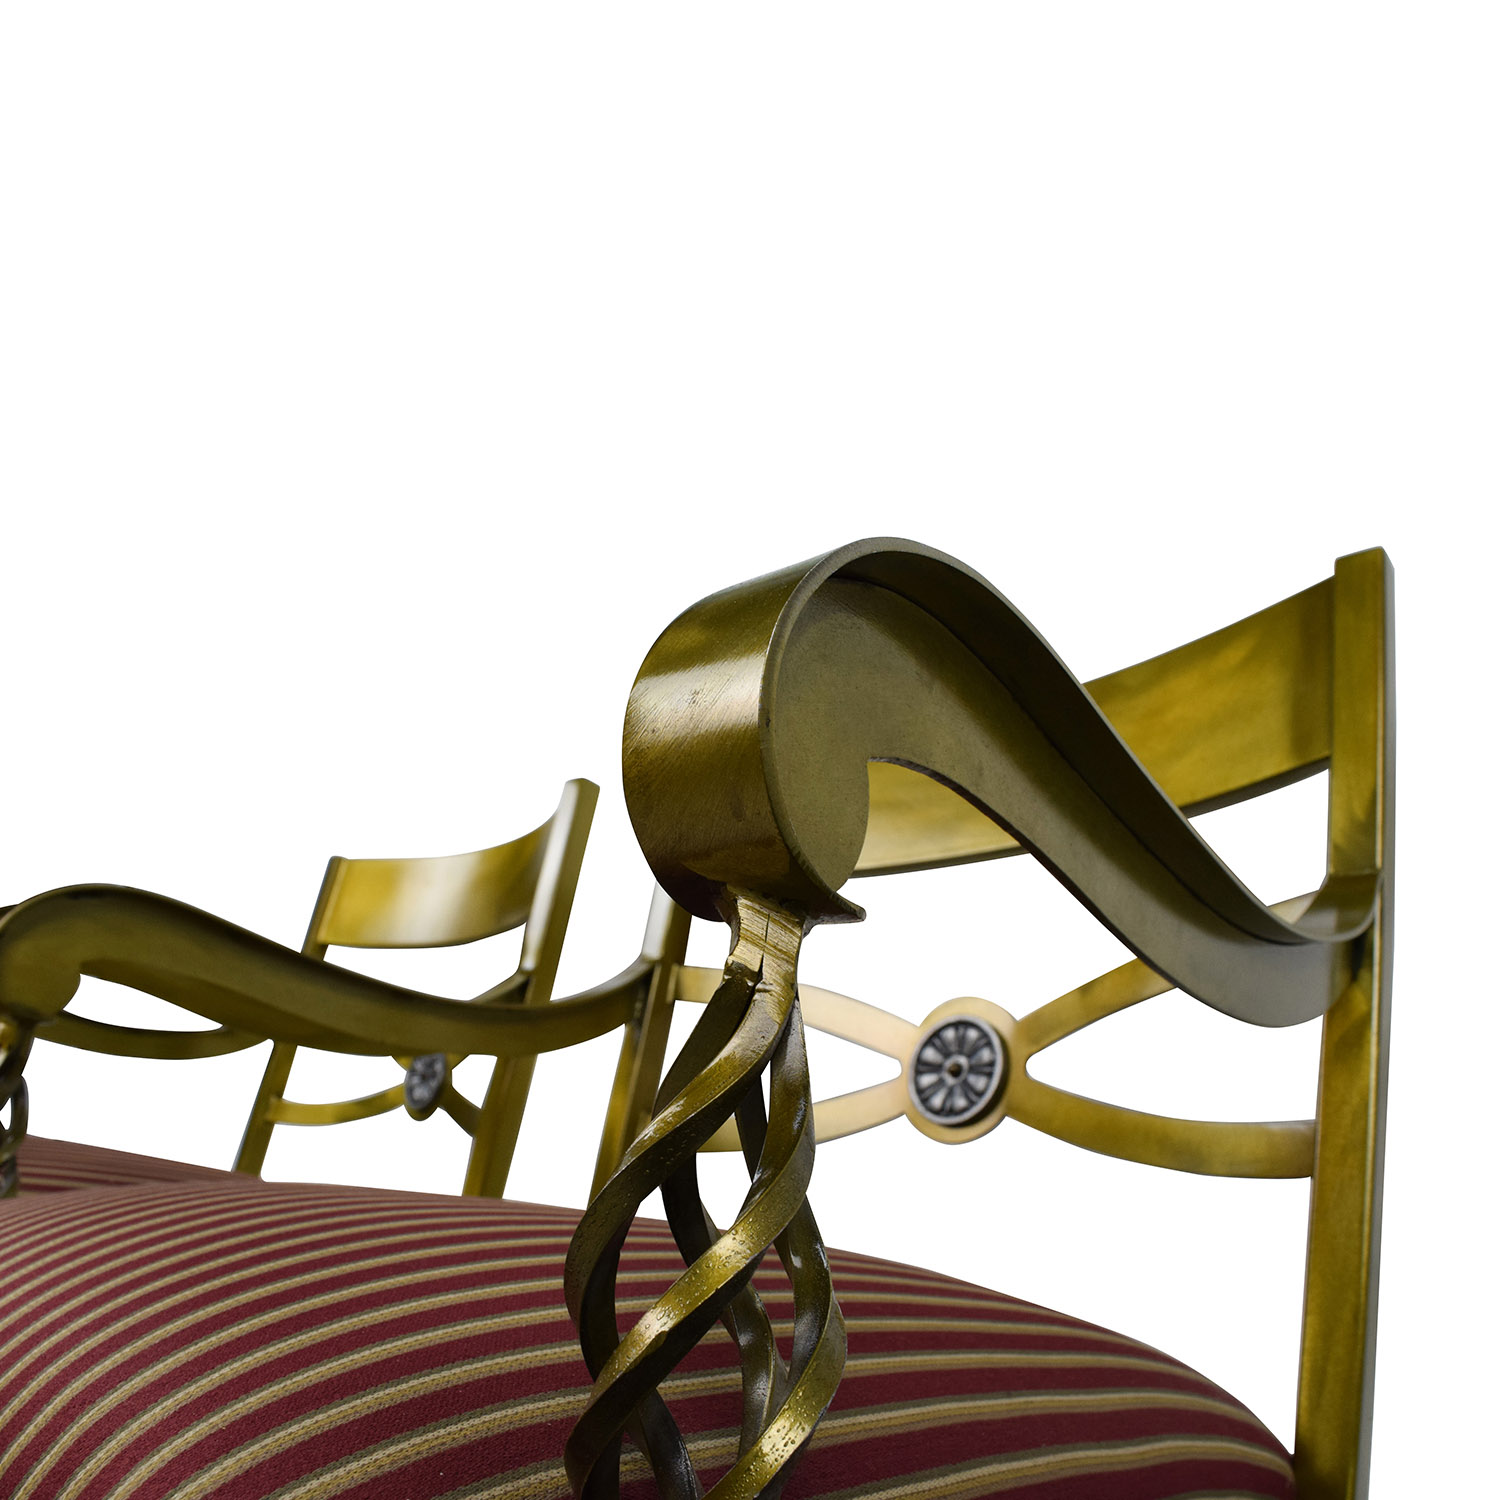 Custom Made Antique Gold Wrought Iron Chairs